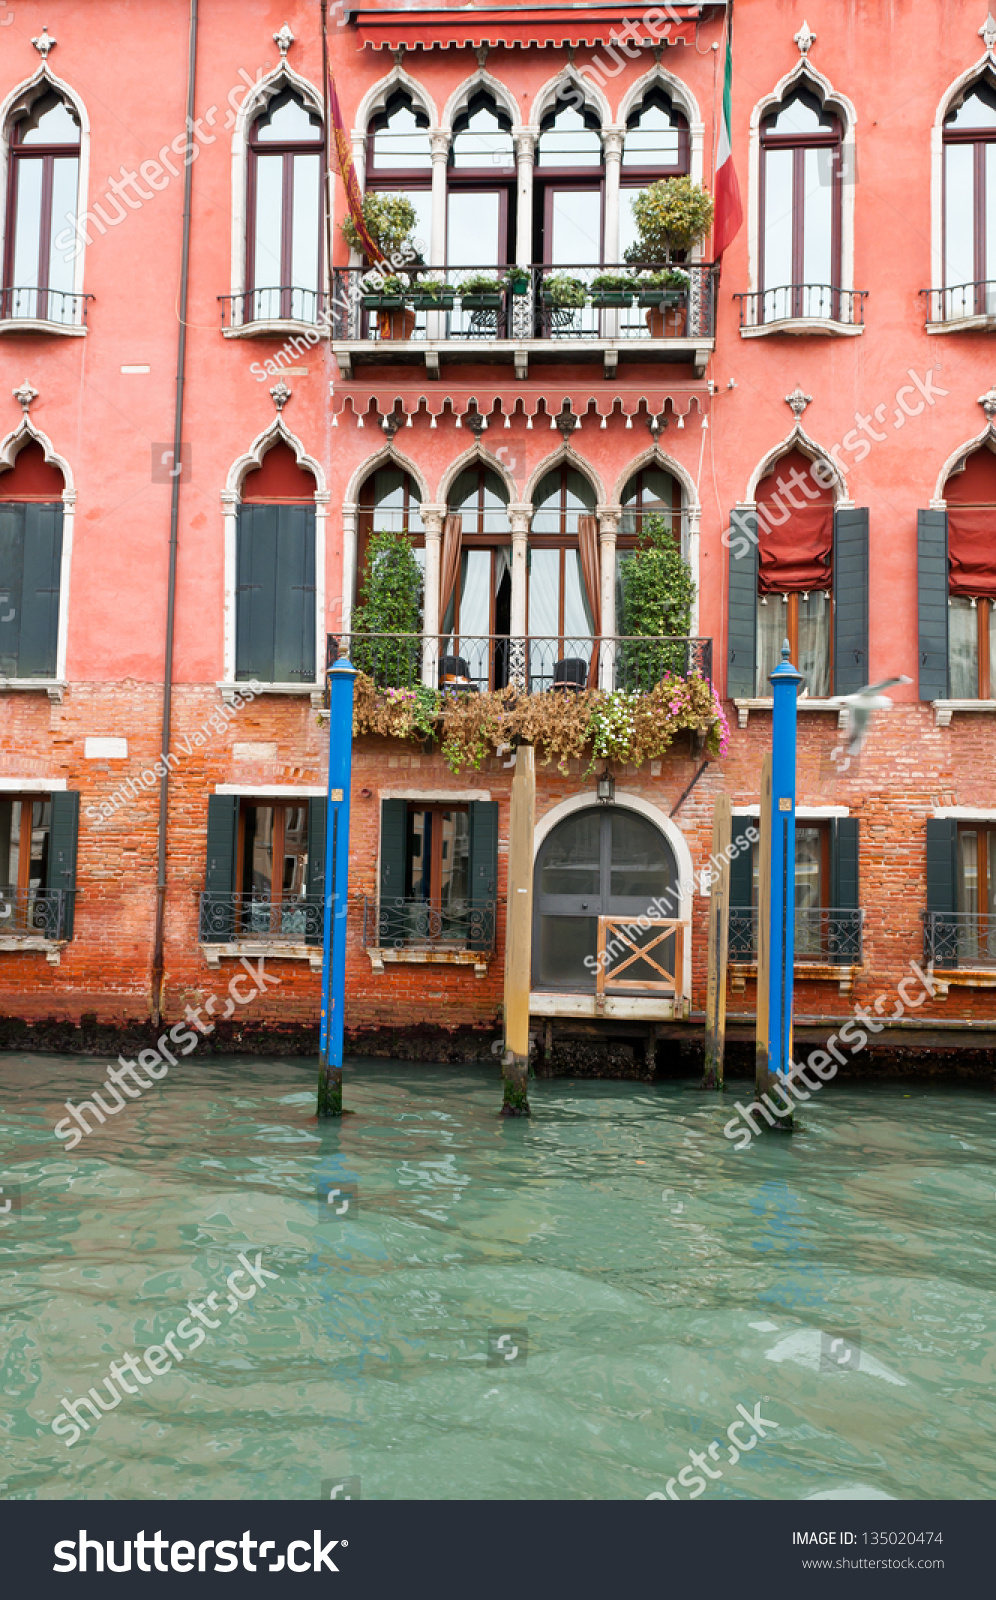 Old Building Made Of Bricks Near Water In Grand Canal Venice Red Pattern